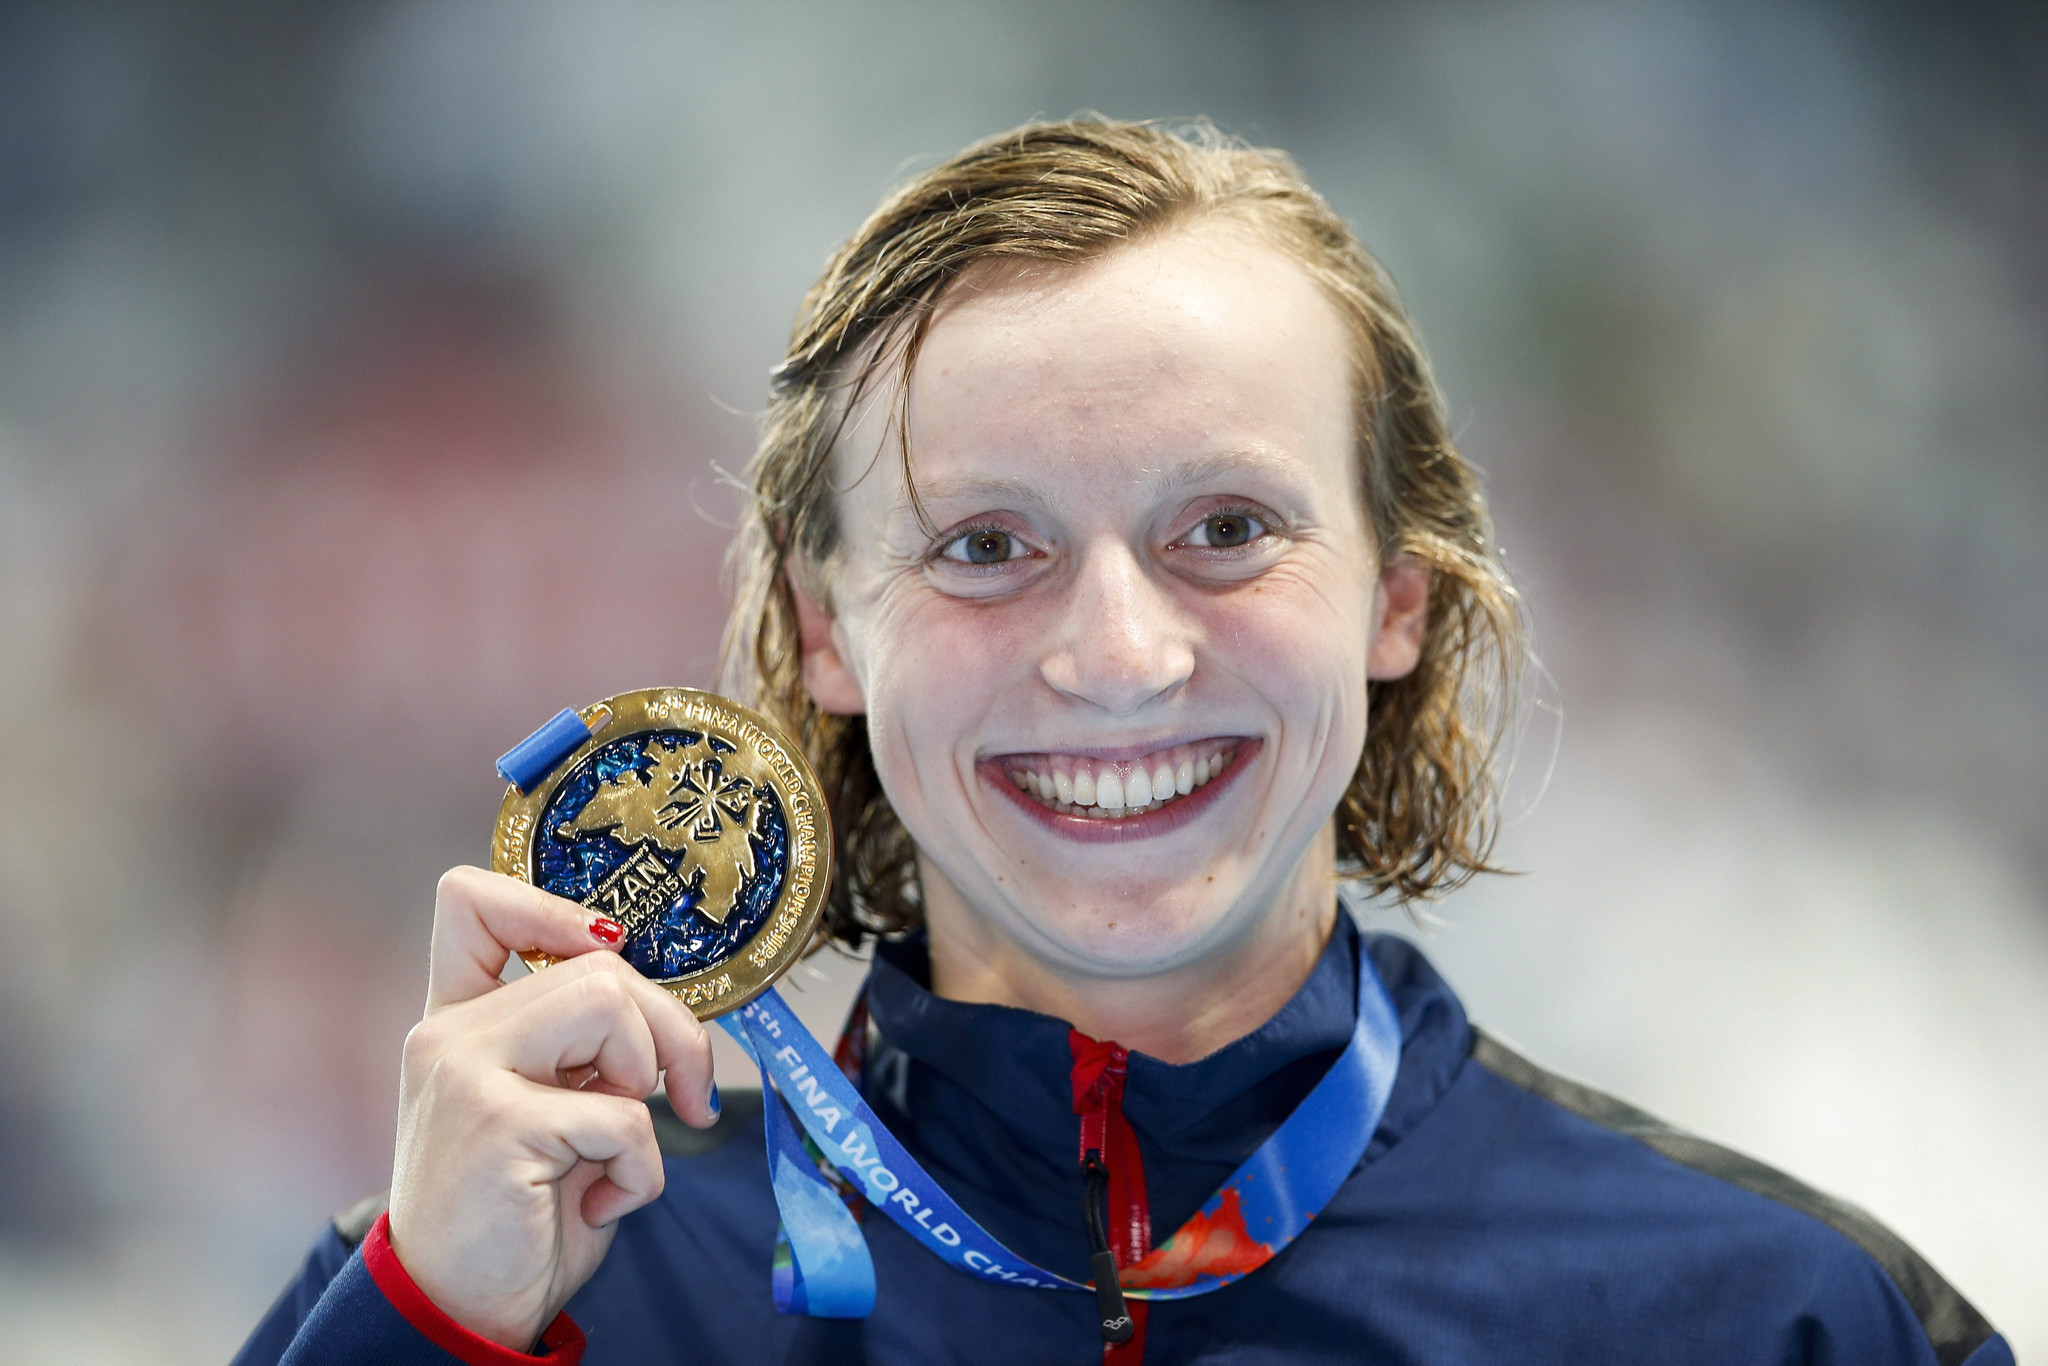 la-sp-sn-katie-ledecky-world-swimming-championships-20150808